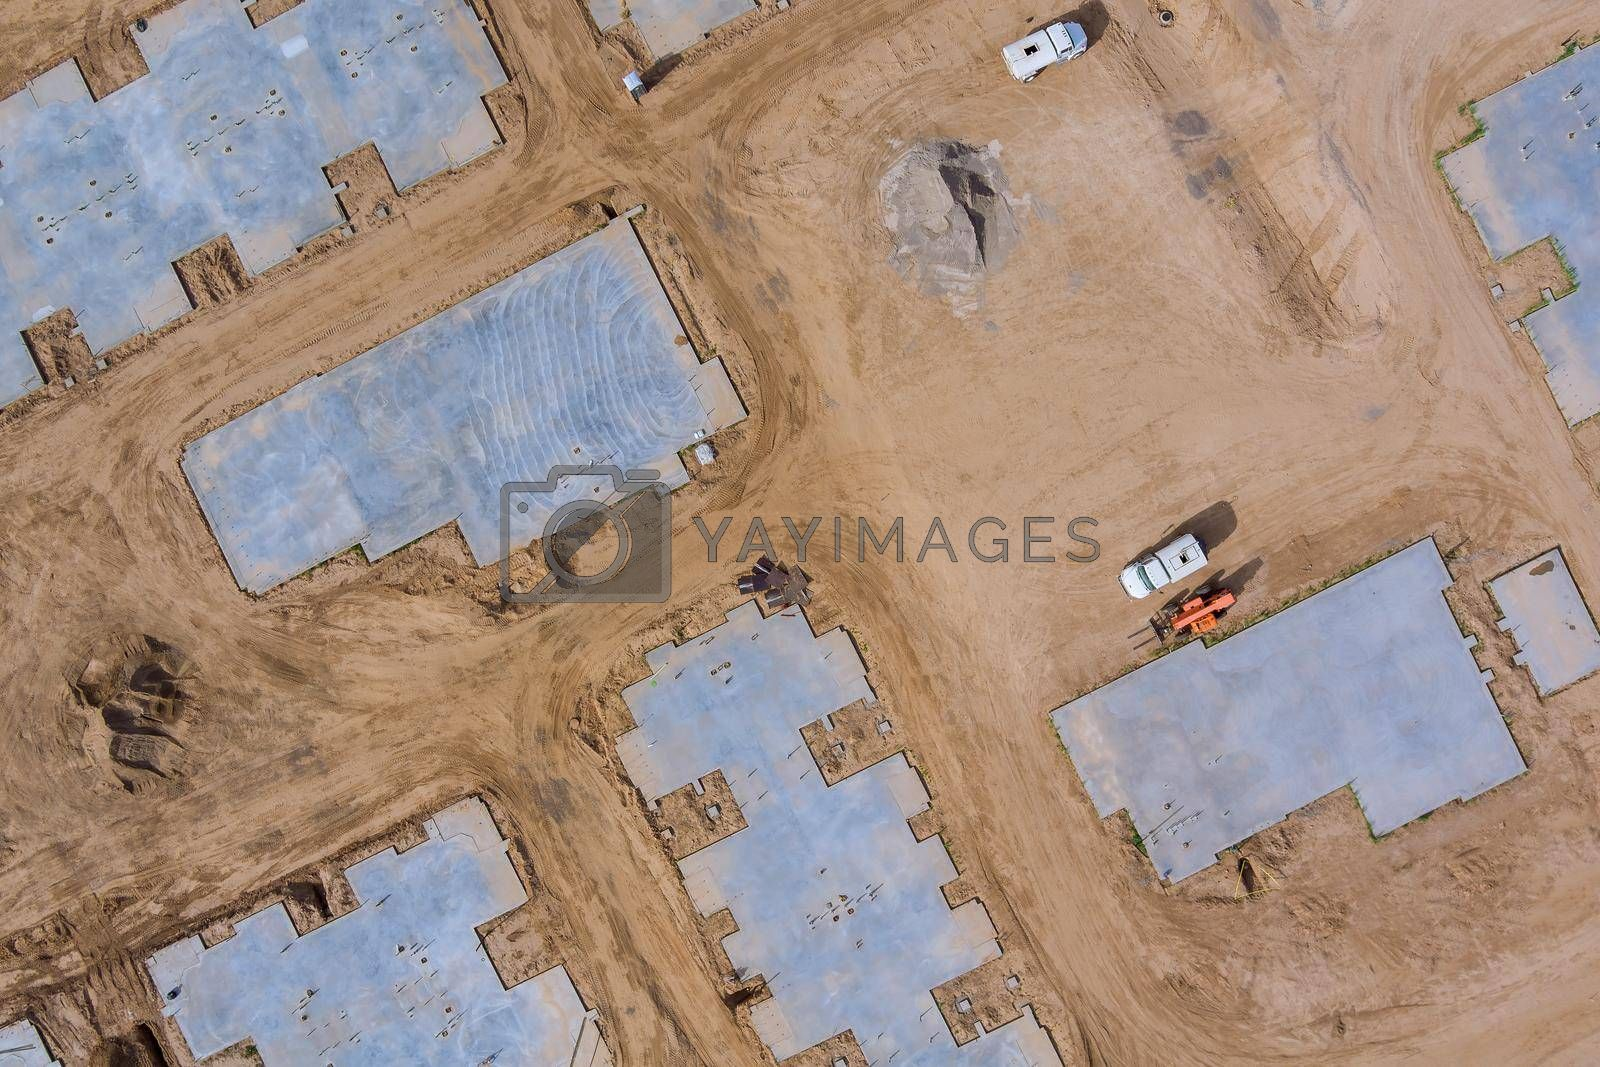 Aerial view on construction work in newly completed cement foundation of new residential district with apartment buildings